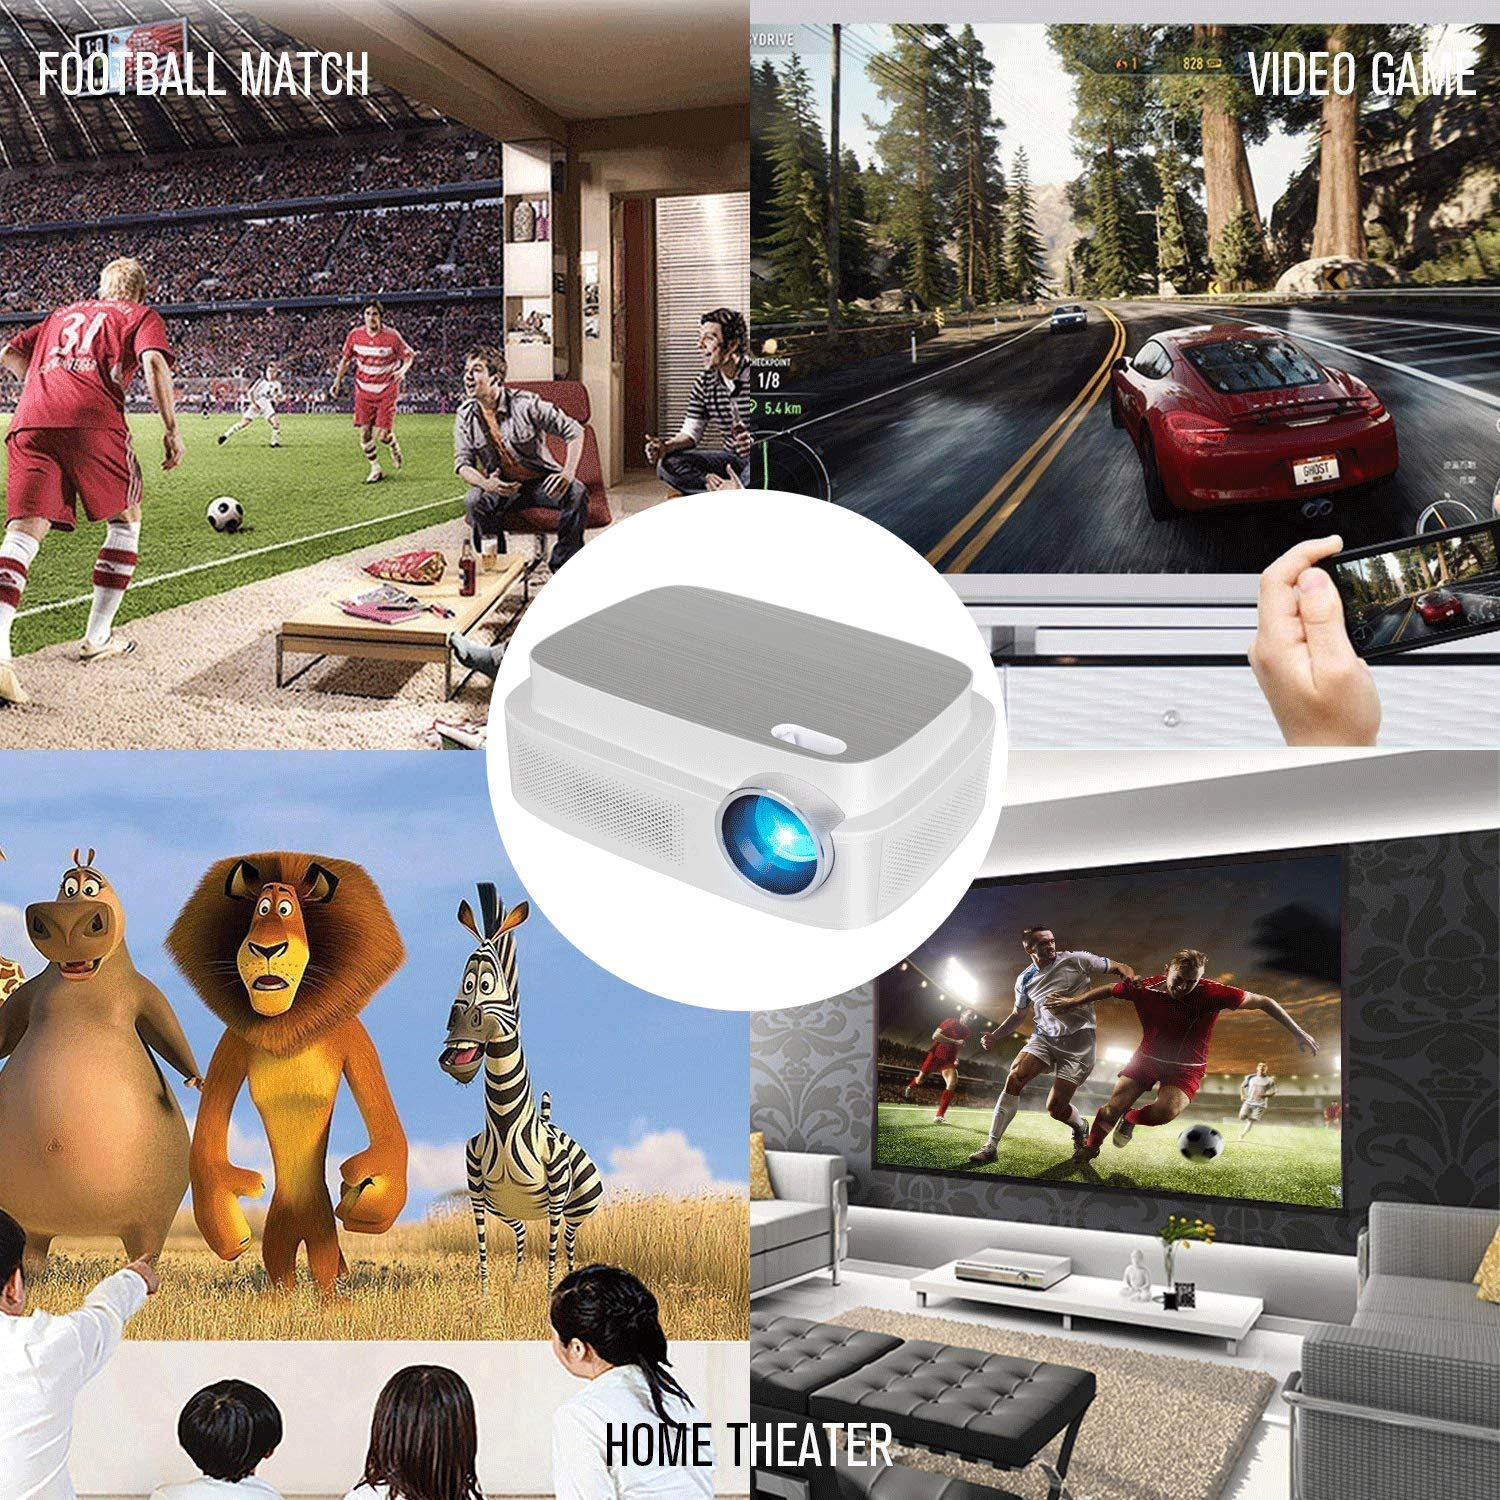 Portable Projector -12000 lumens WiFi 1080p Video Projector LCD LED Full HD Theater Projector, Ideal for Home Entertainment by GAOAG (Image #7)